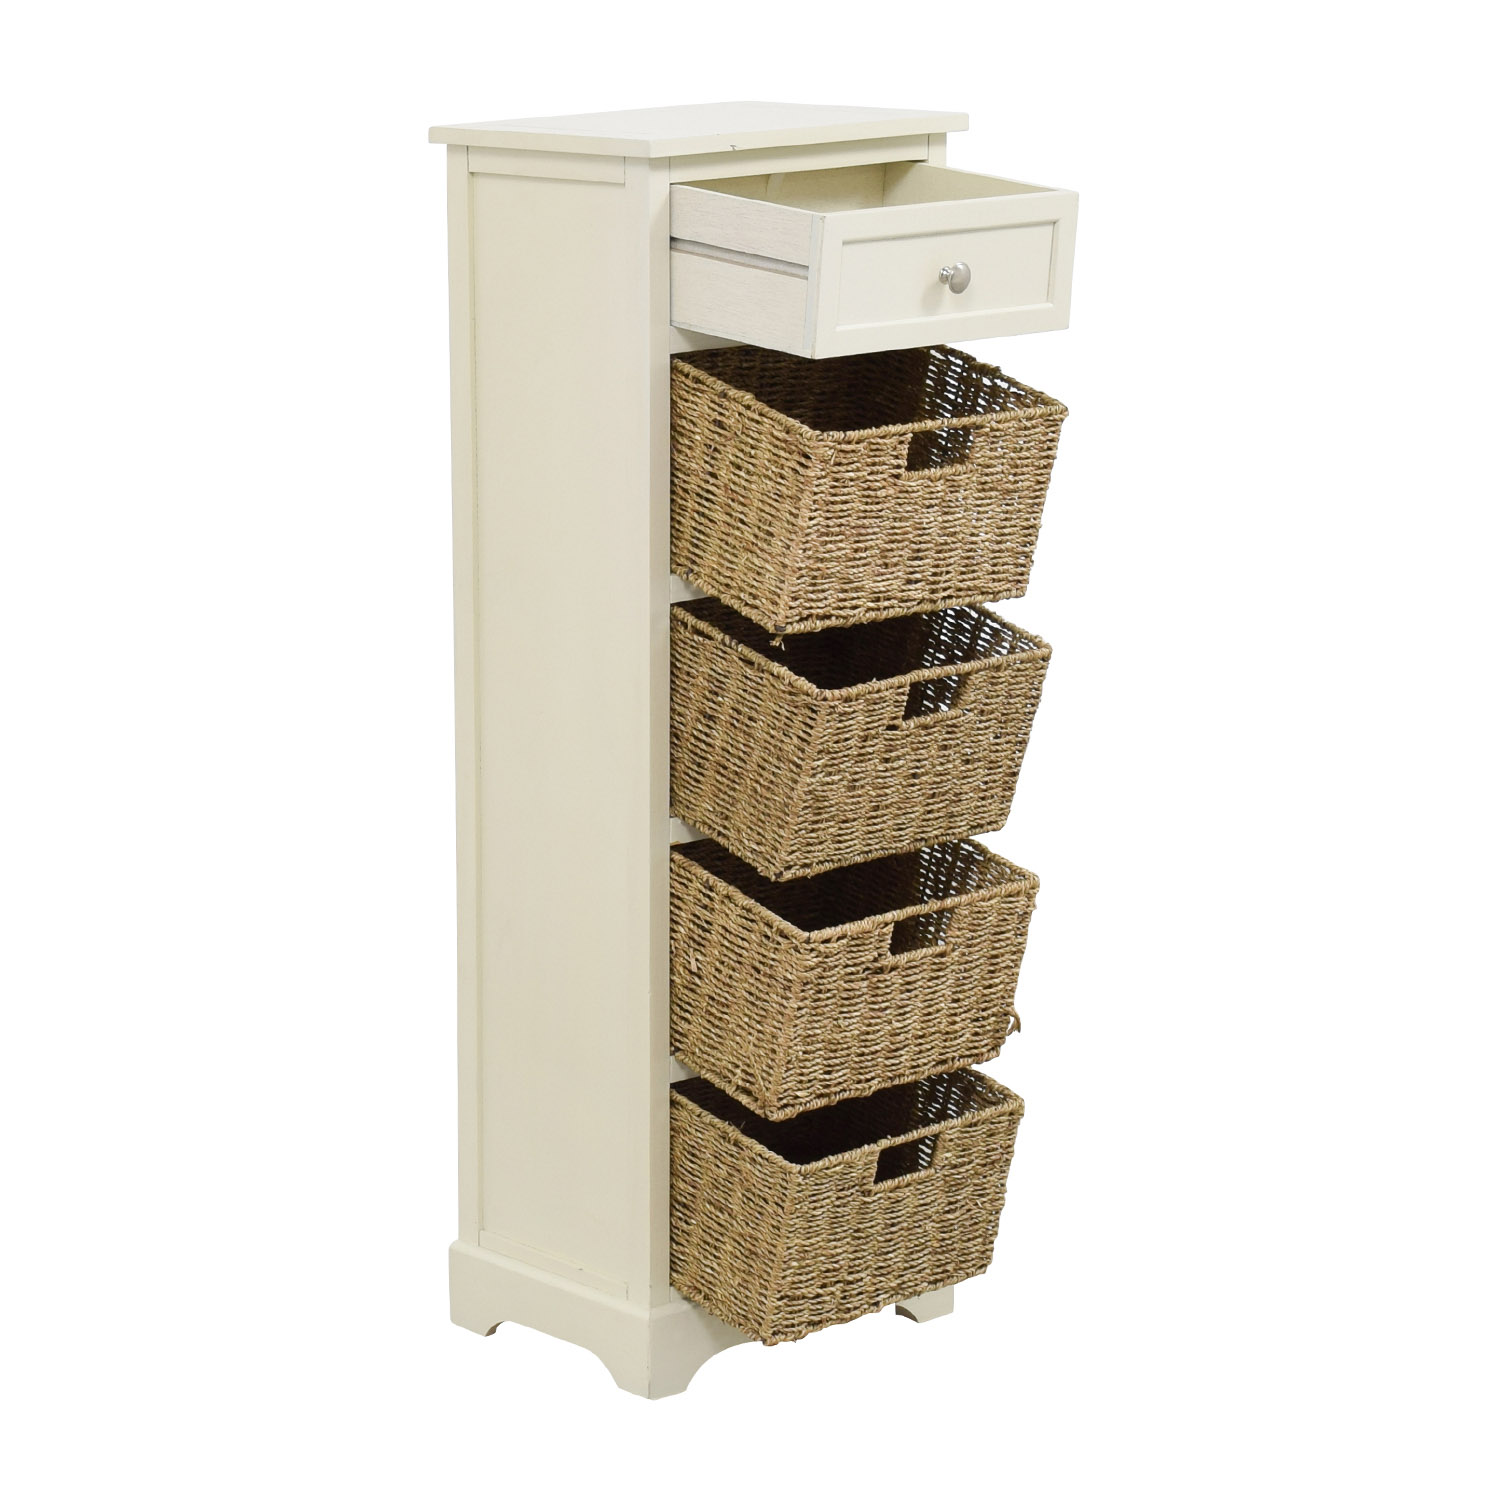 shop Tall White Storage Unit with Drawer and Wicker Baskets